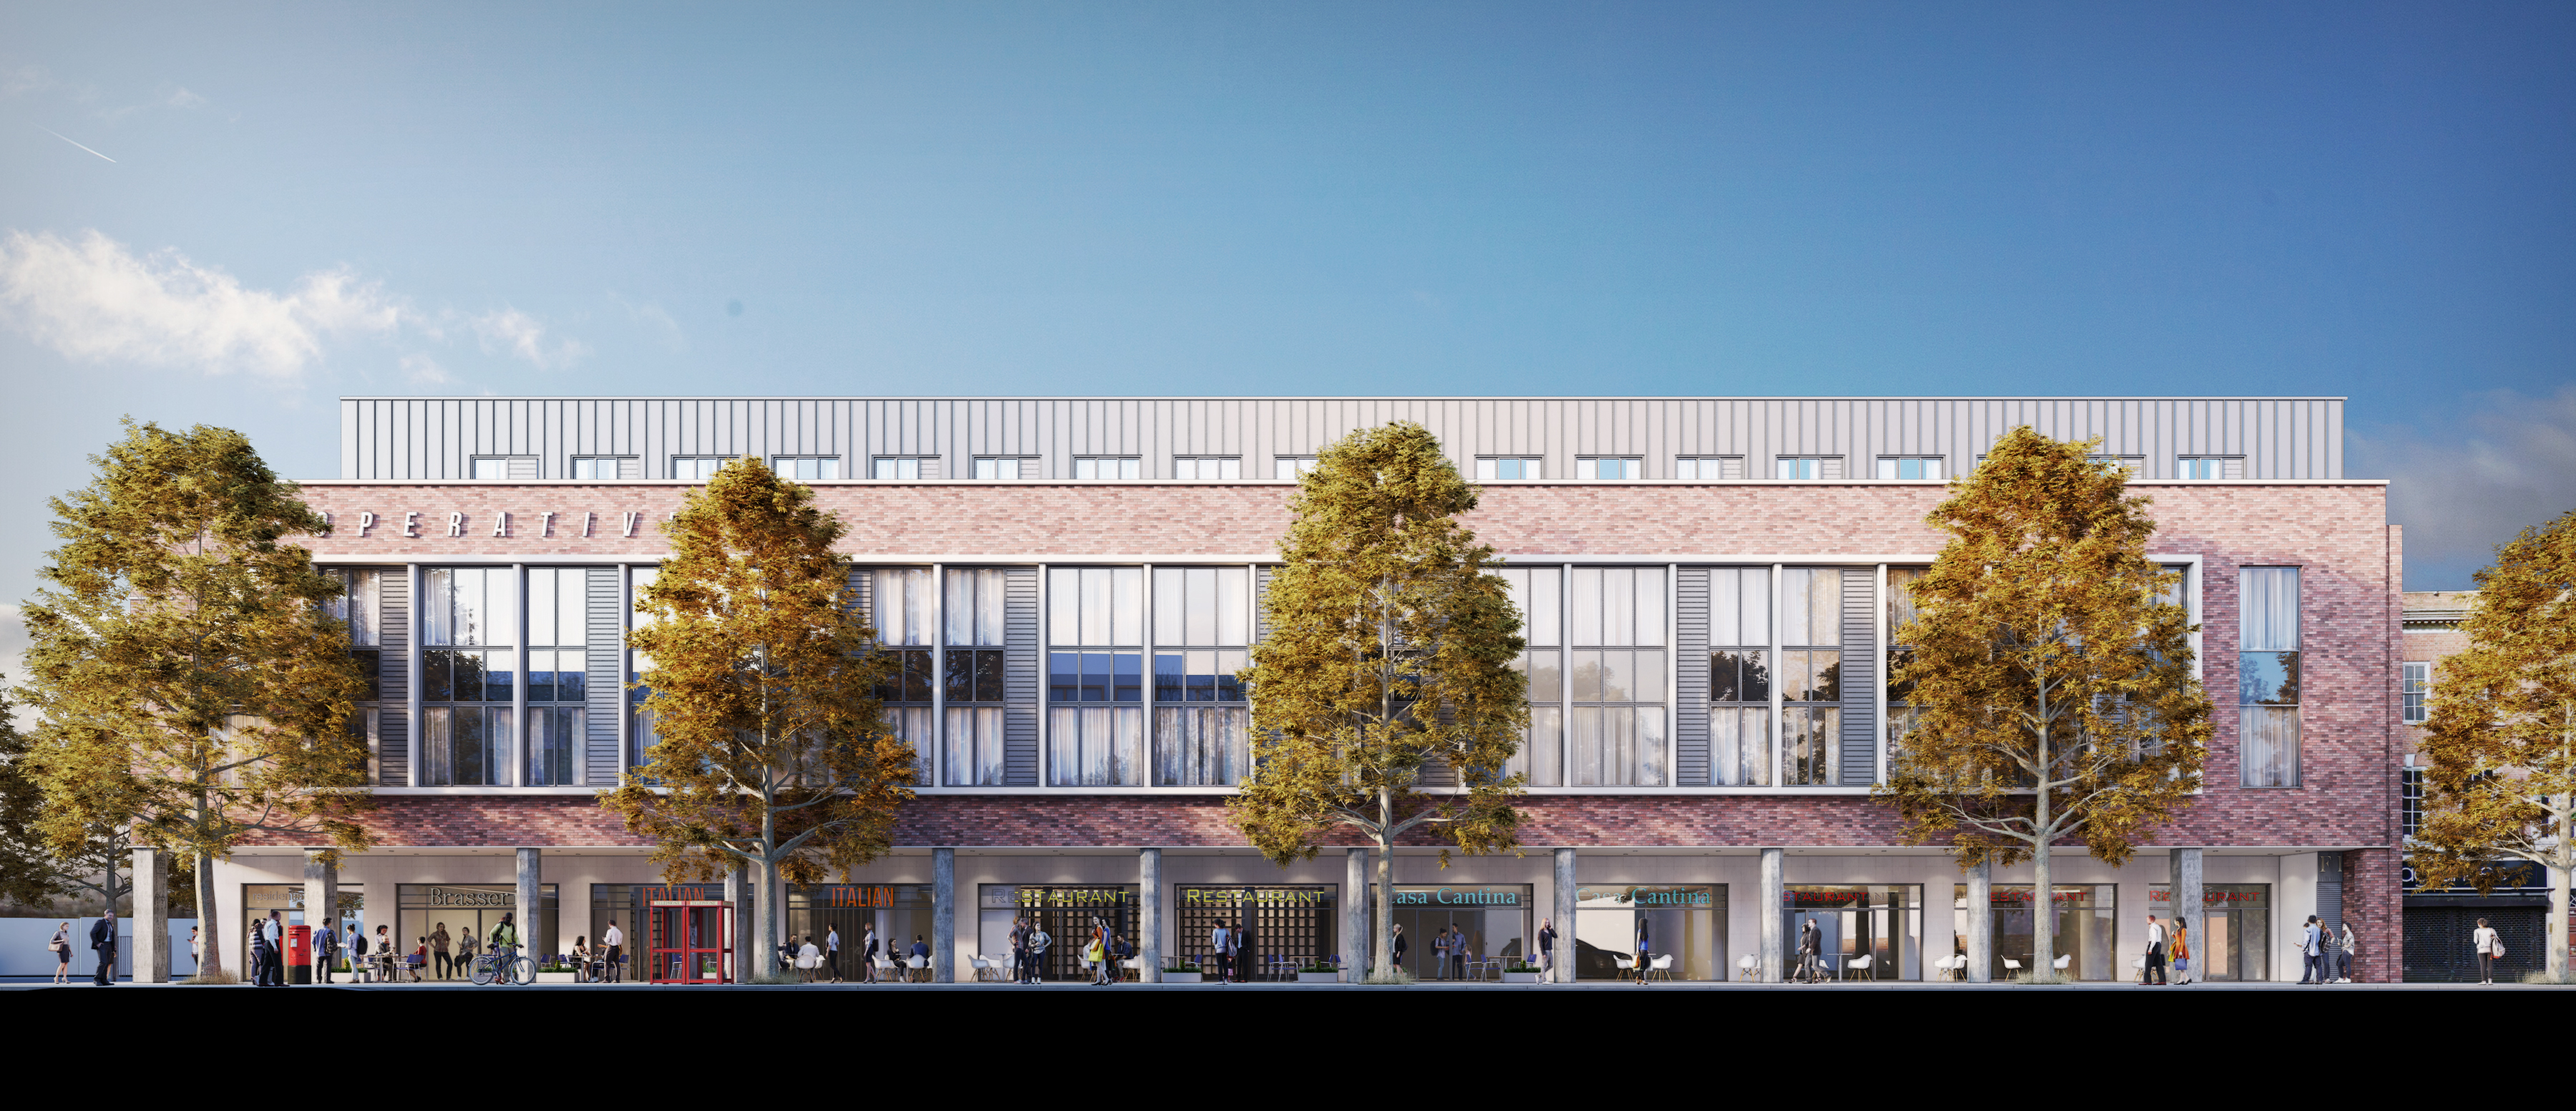 nice coventry plans #6: Plans submitted for landmark Coventry apartment scheme